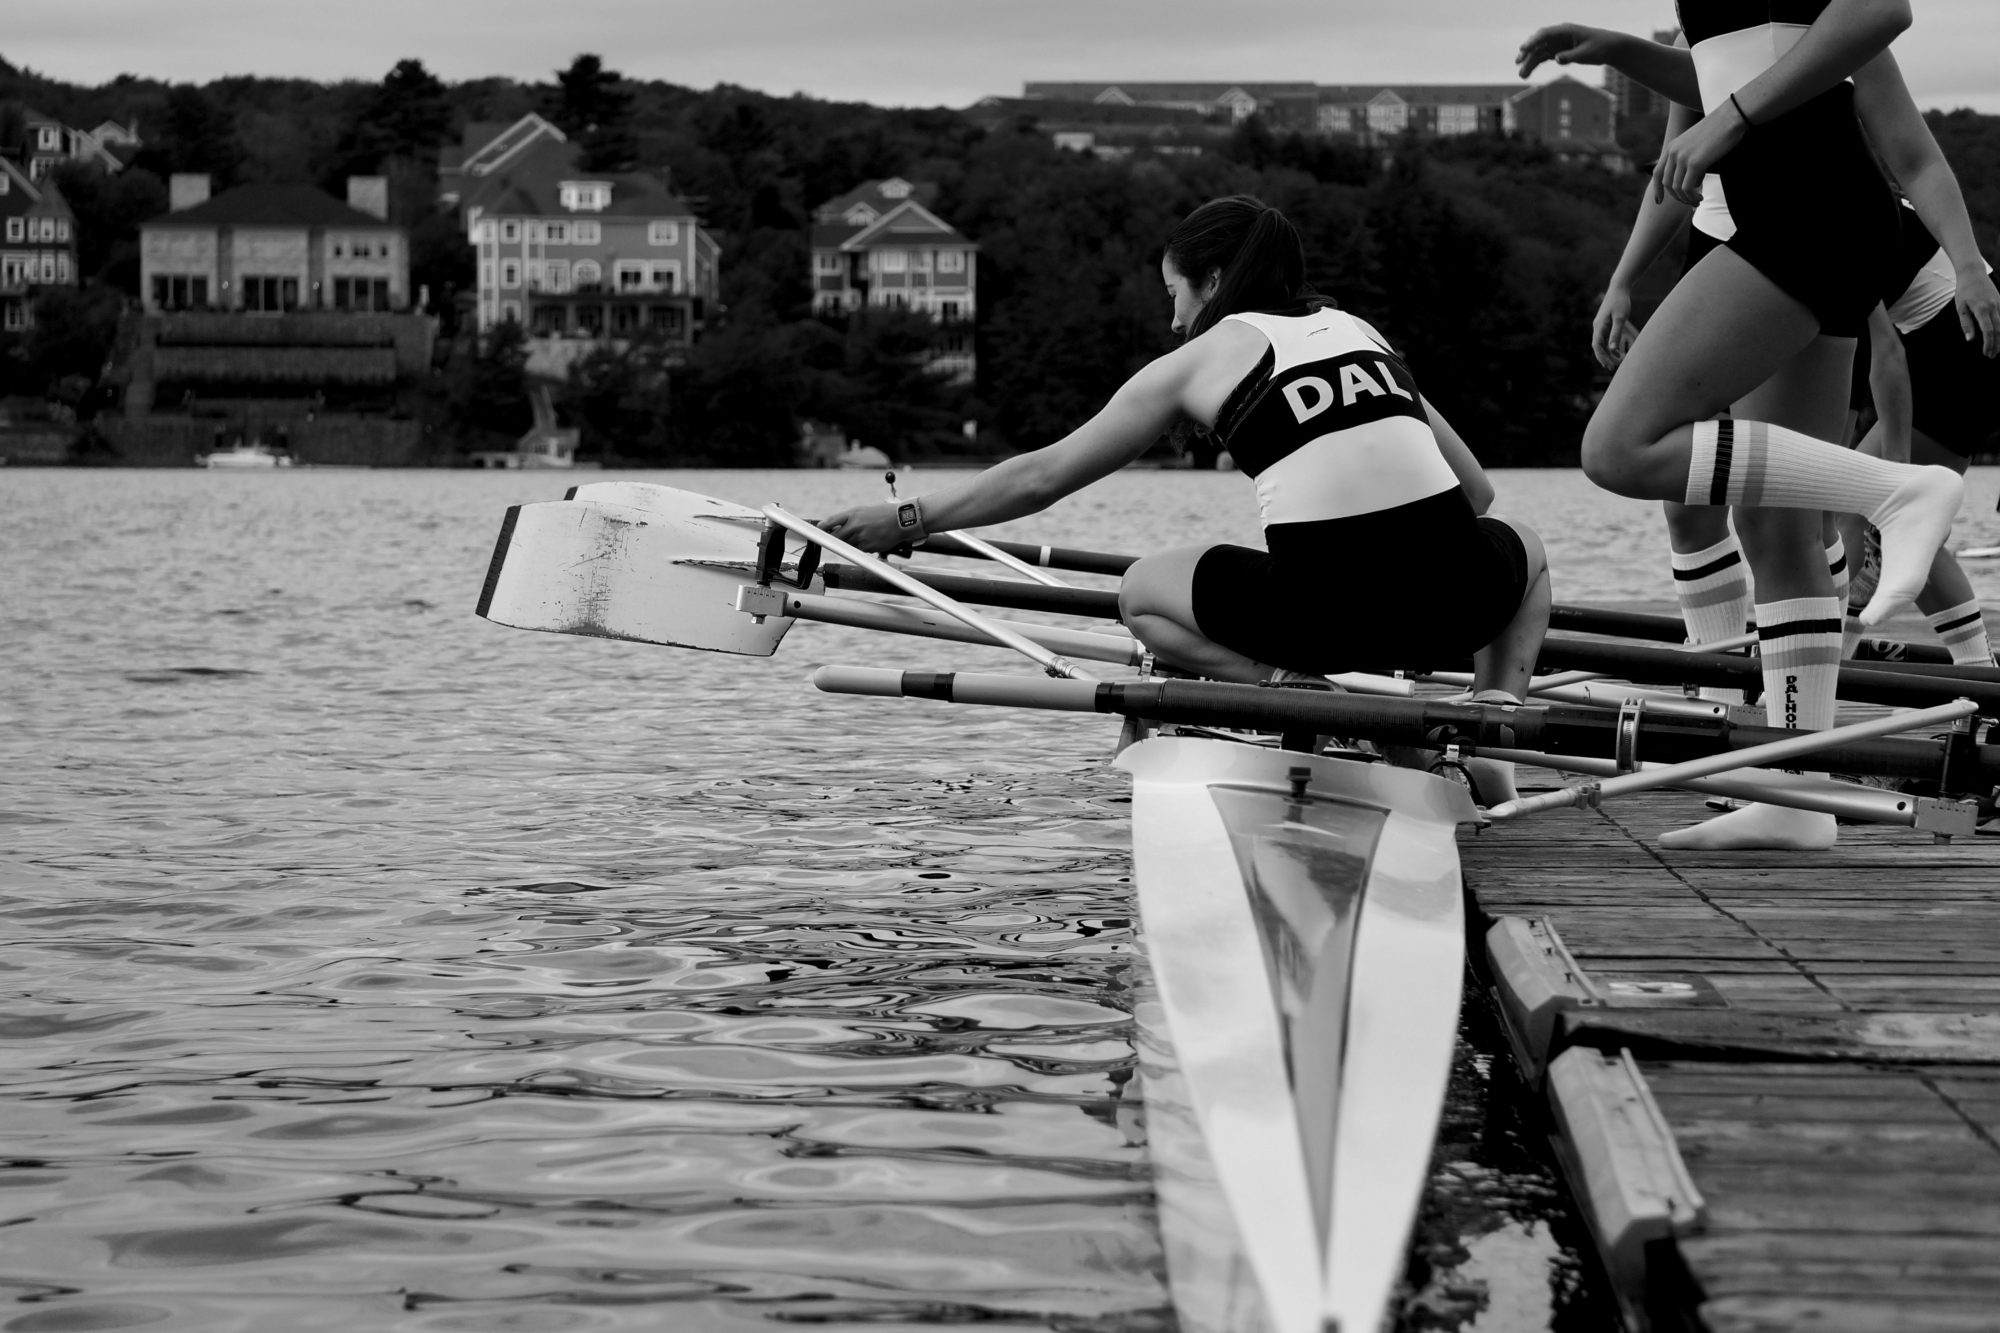 Dalhousie University Rowing Club